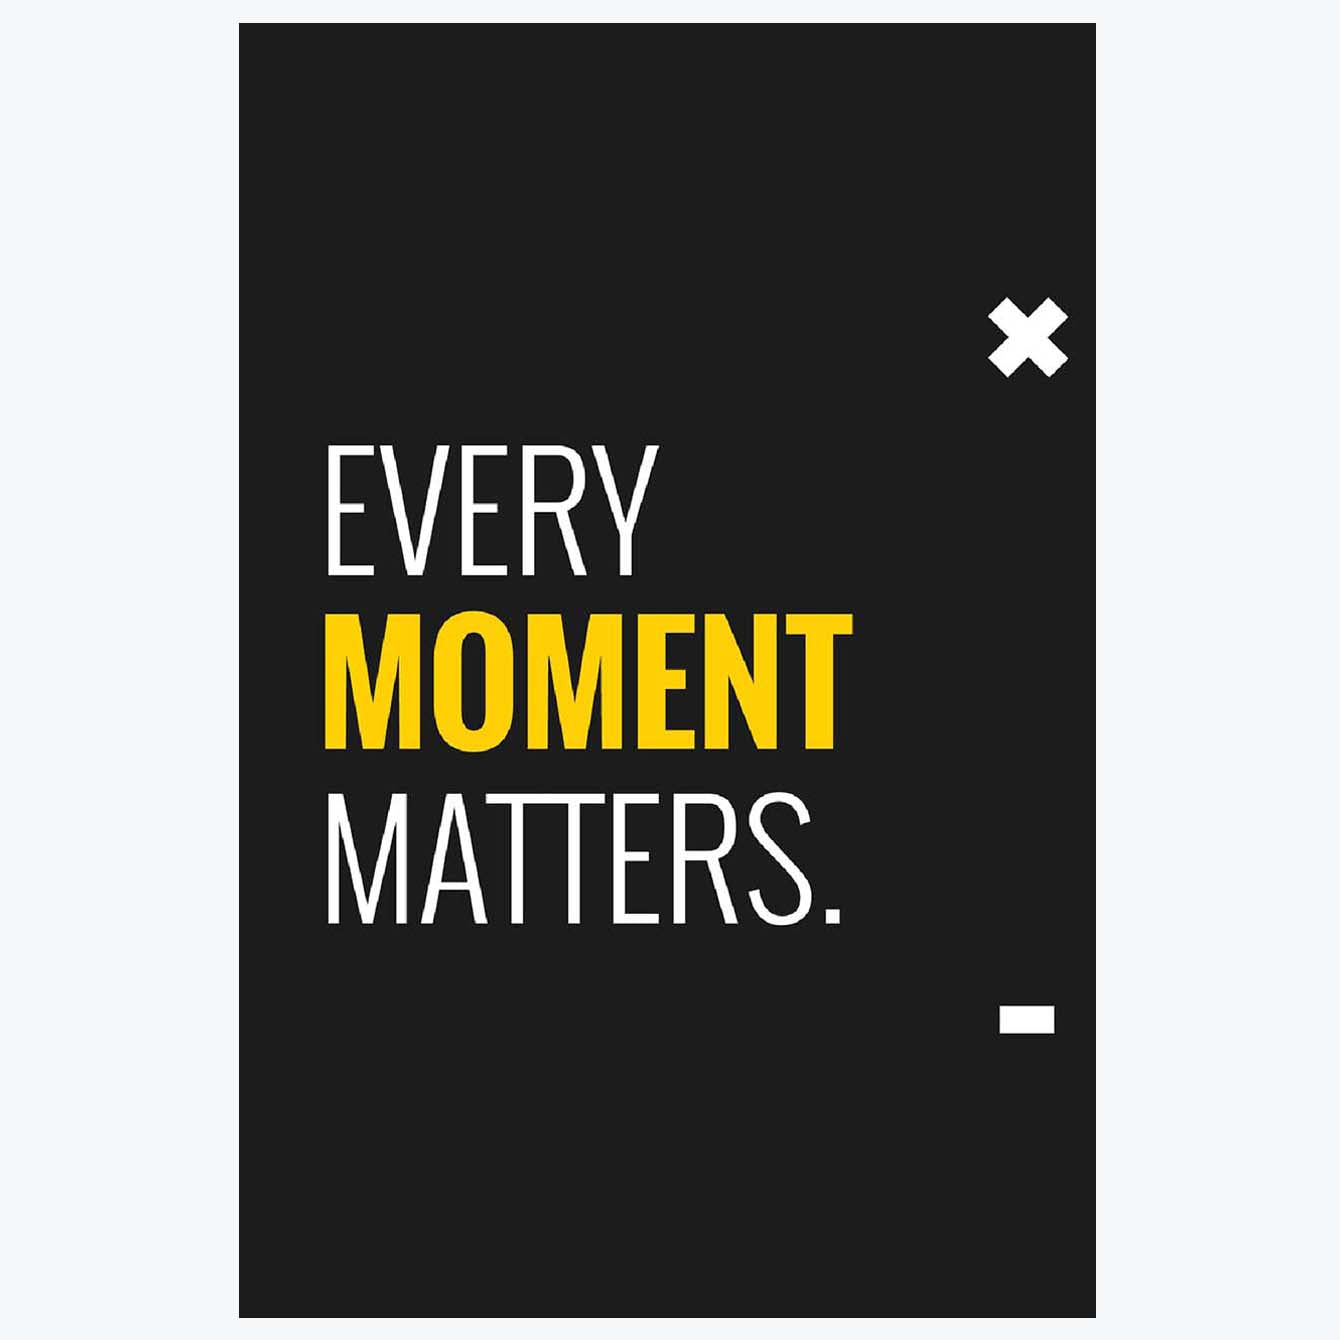 Every Moment Matter Motivational Posters